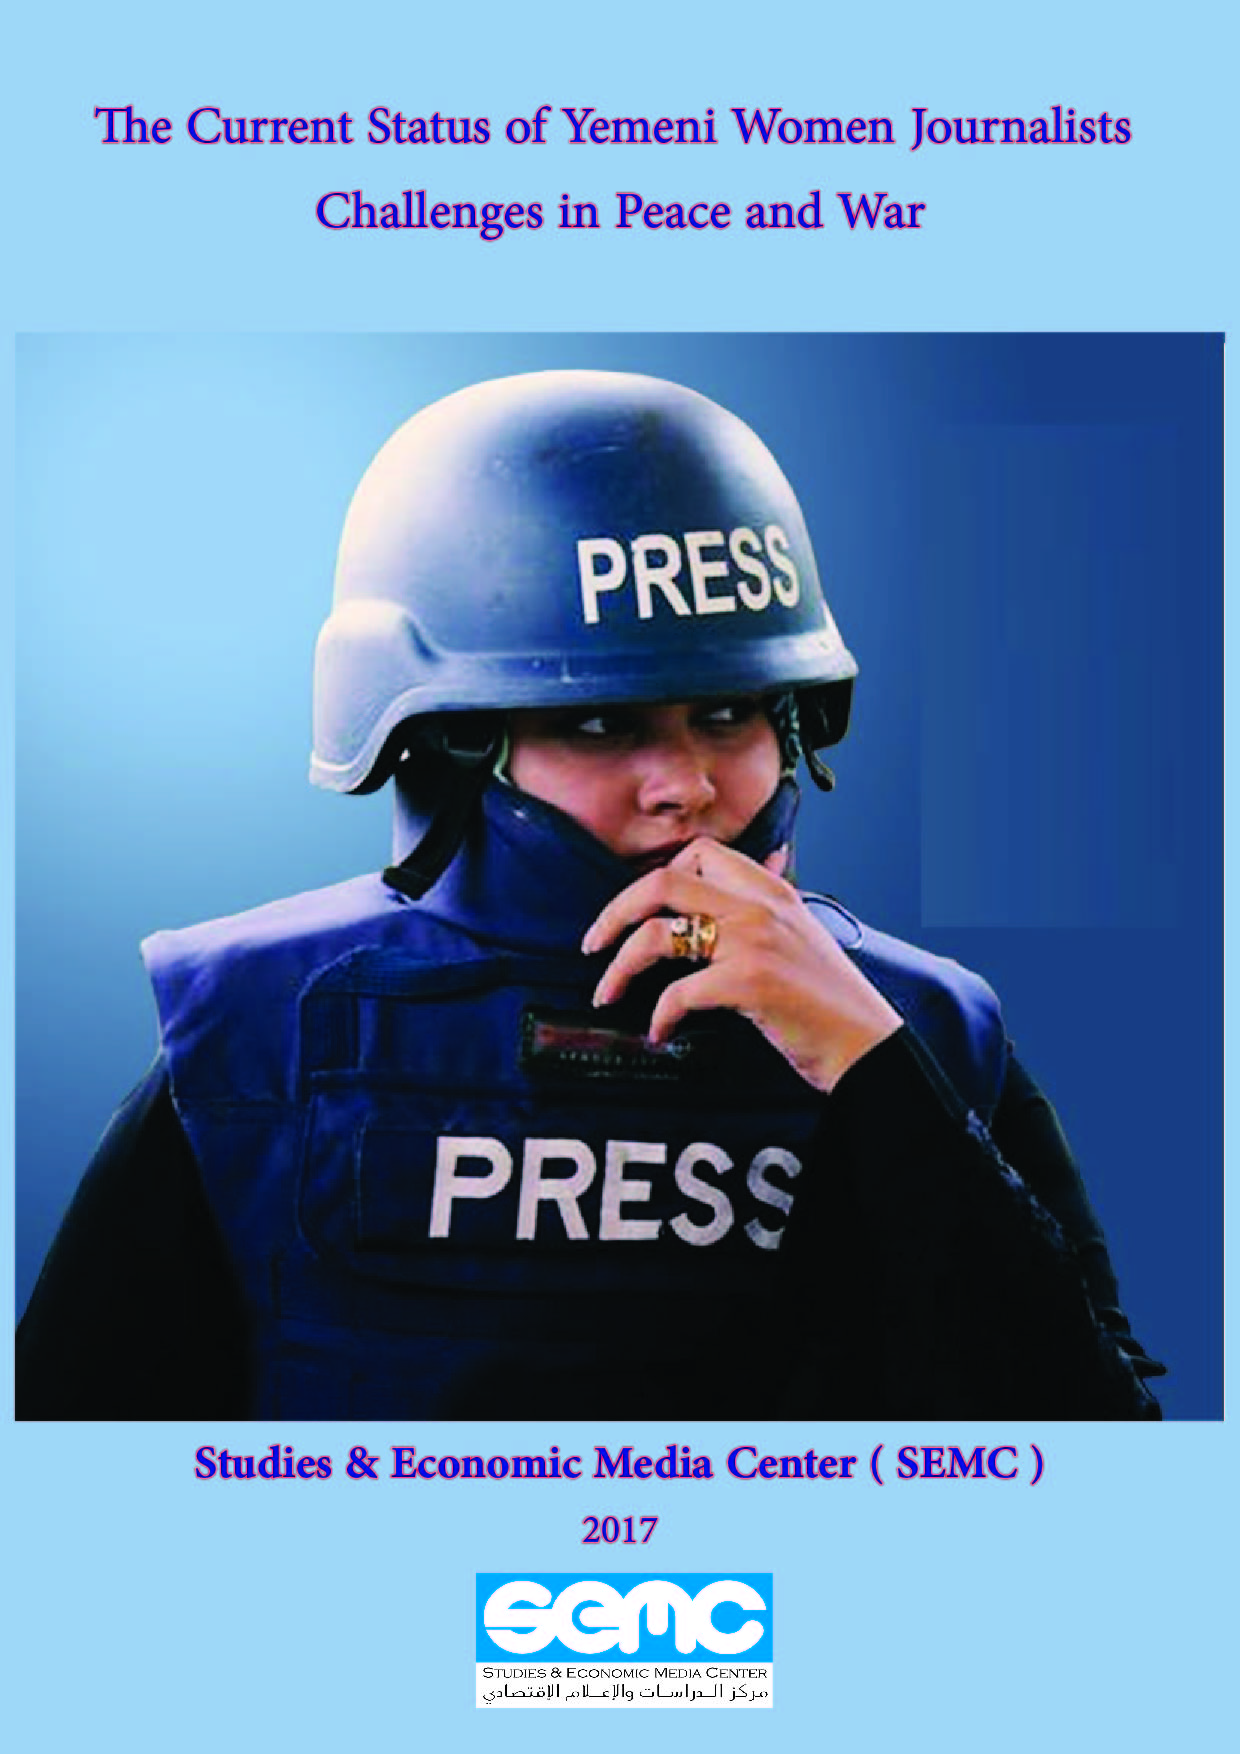 In A Report Issued BY SEMC Yemeni Women Journalists Vulnerable to Violations in War and discrimination in peace